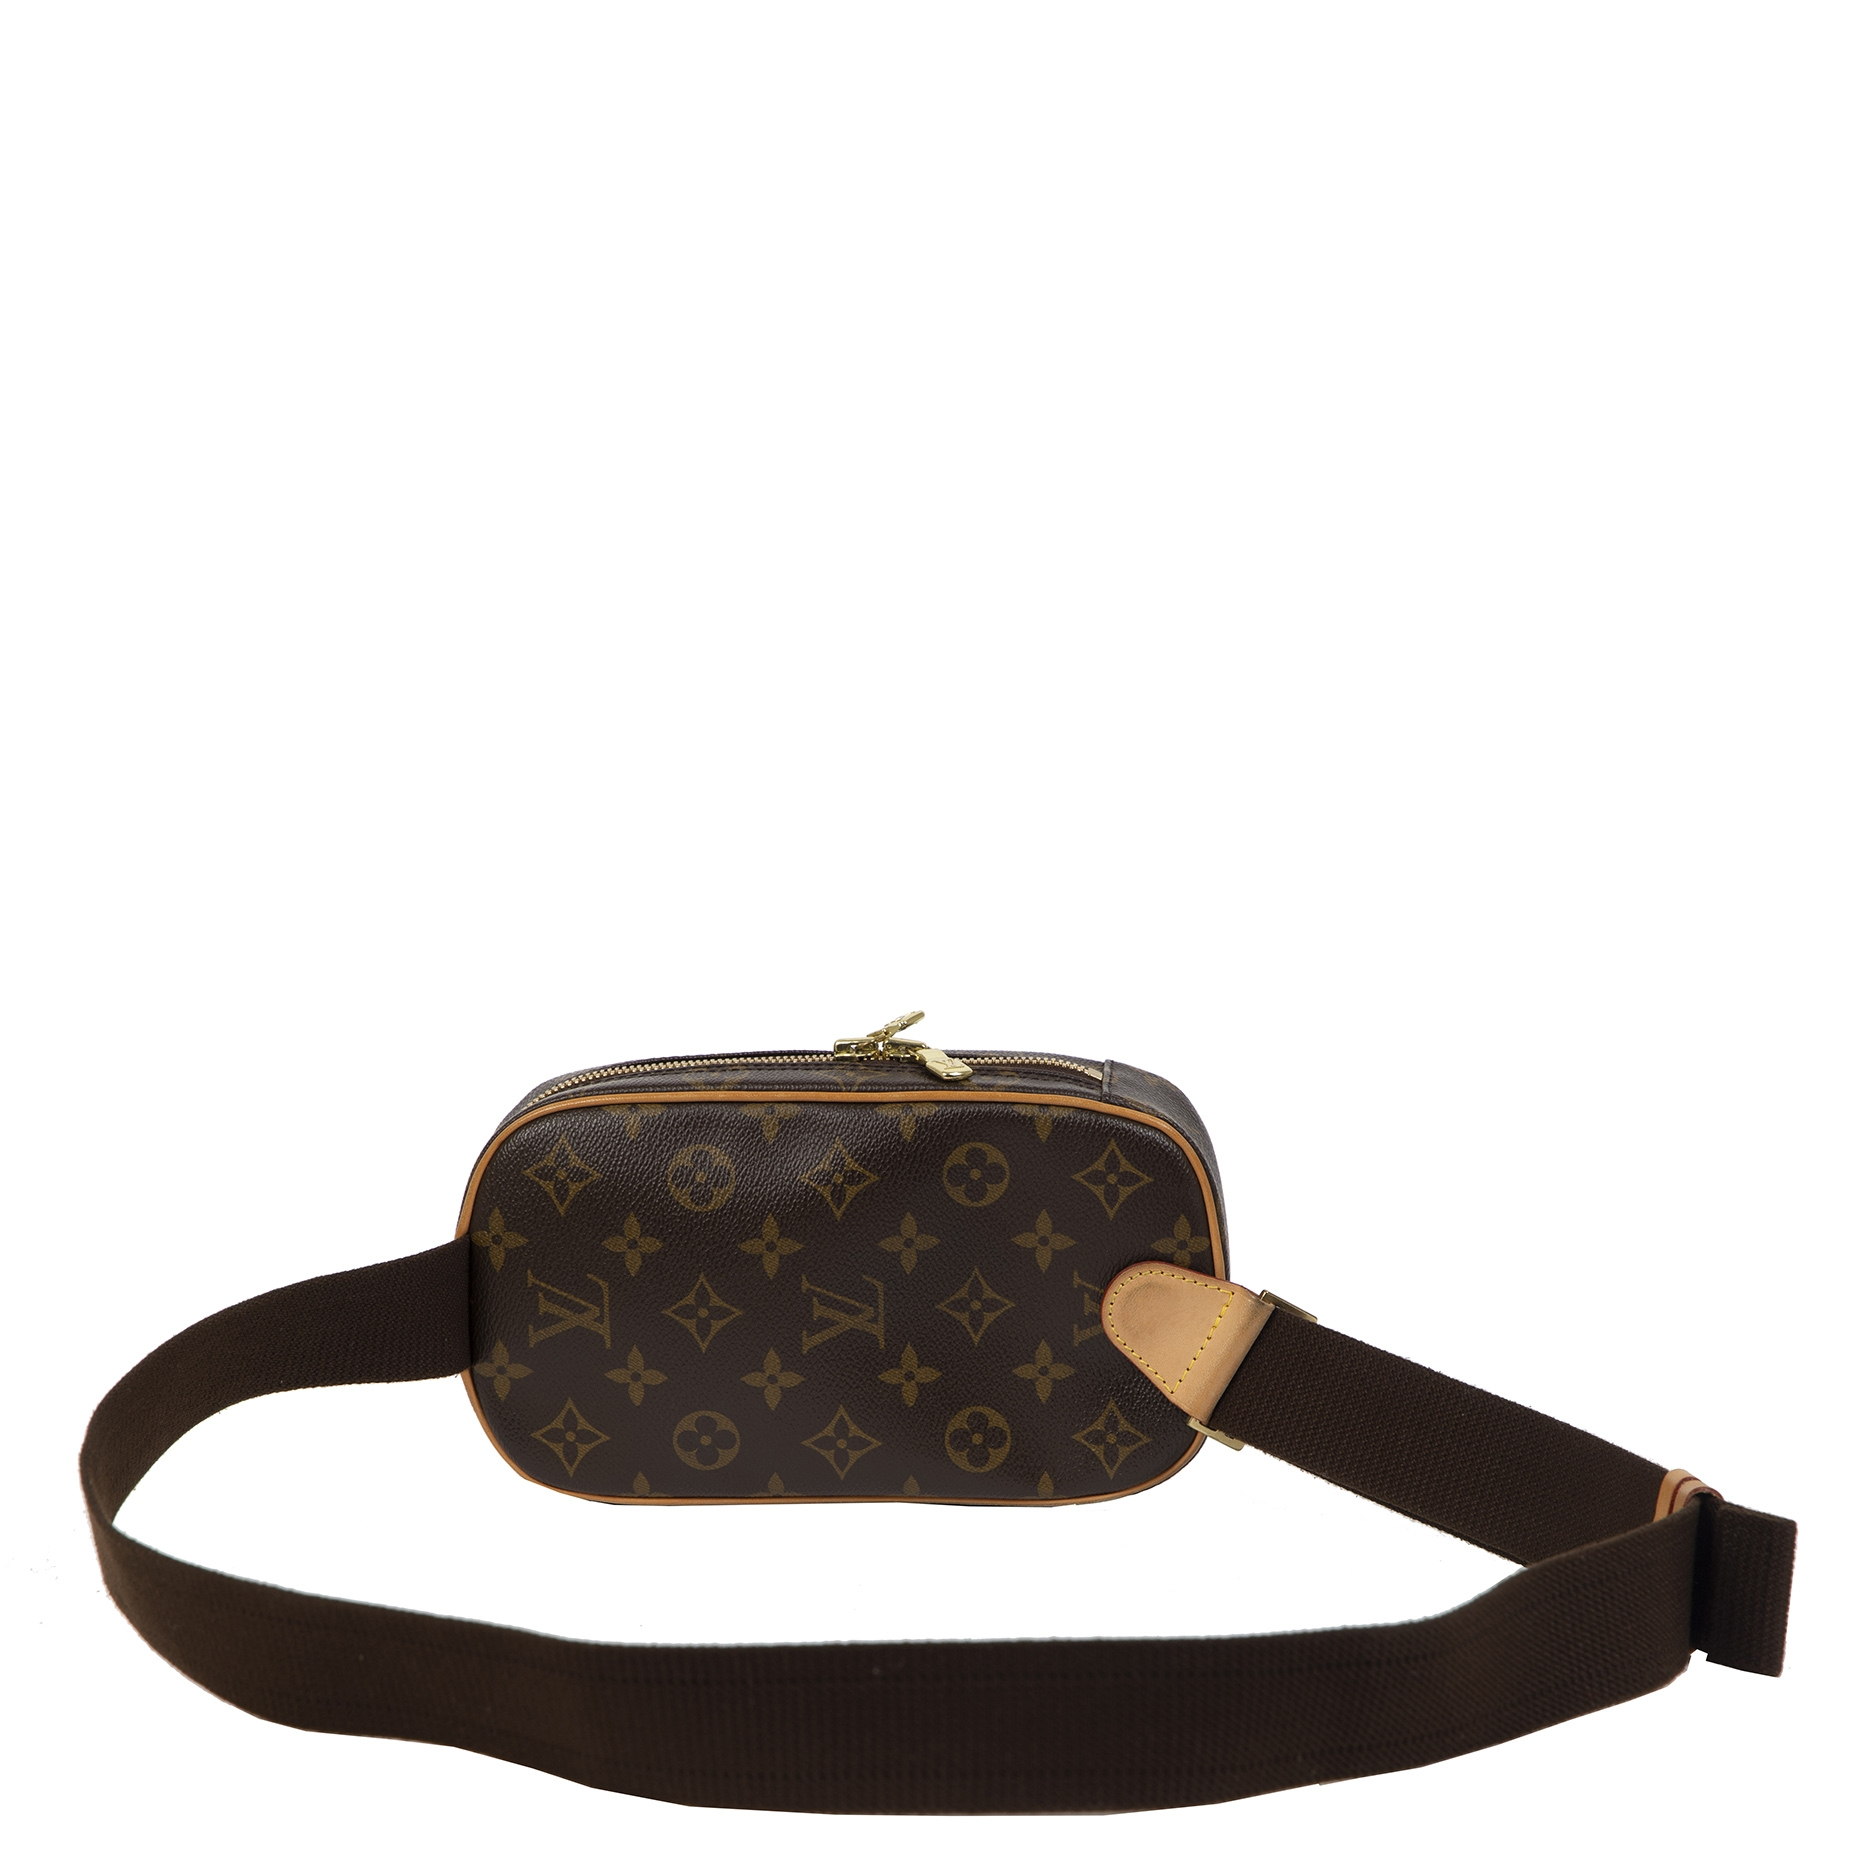 We  buy and sell your authentic Louis Vuitton Monogram Pochette Gange Belt Bag